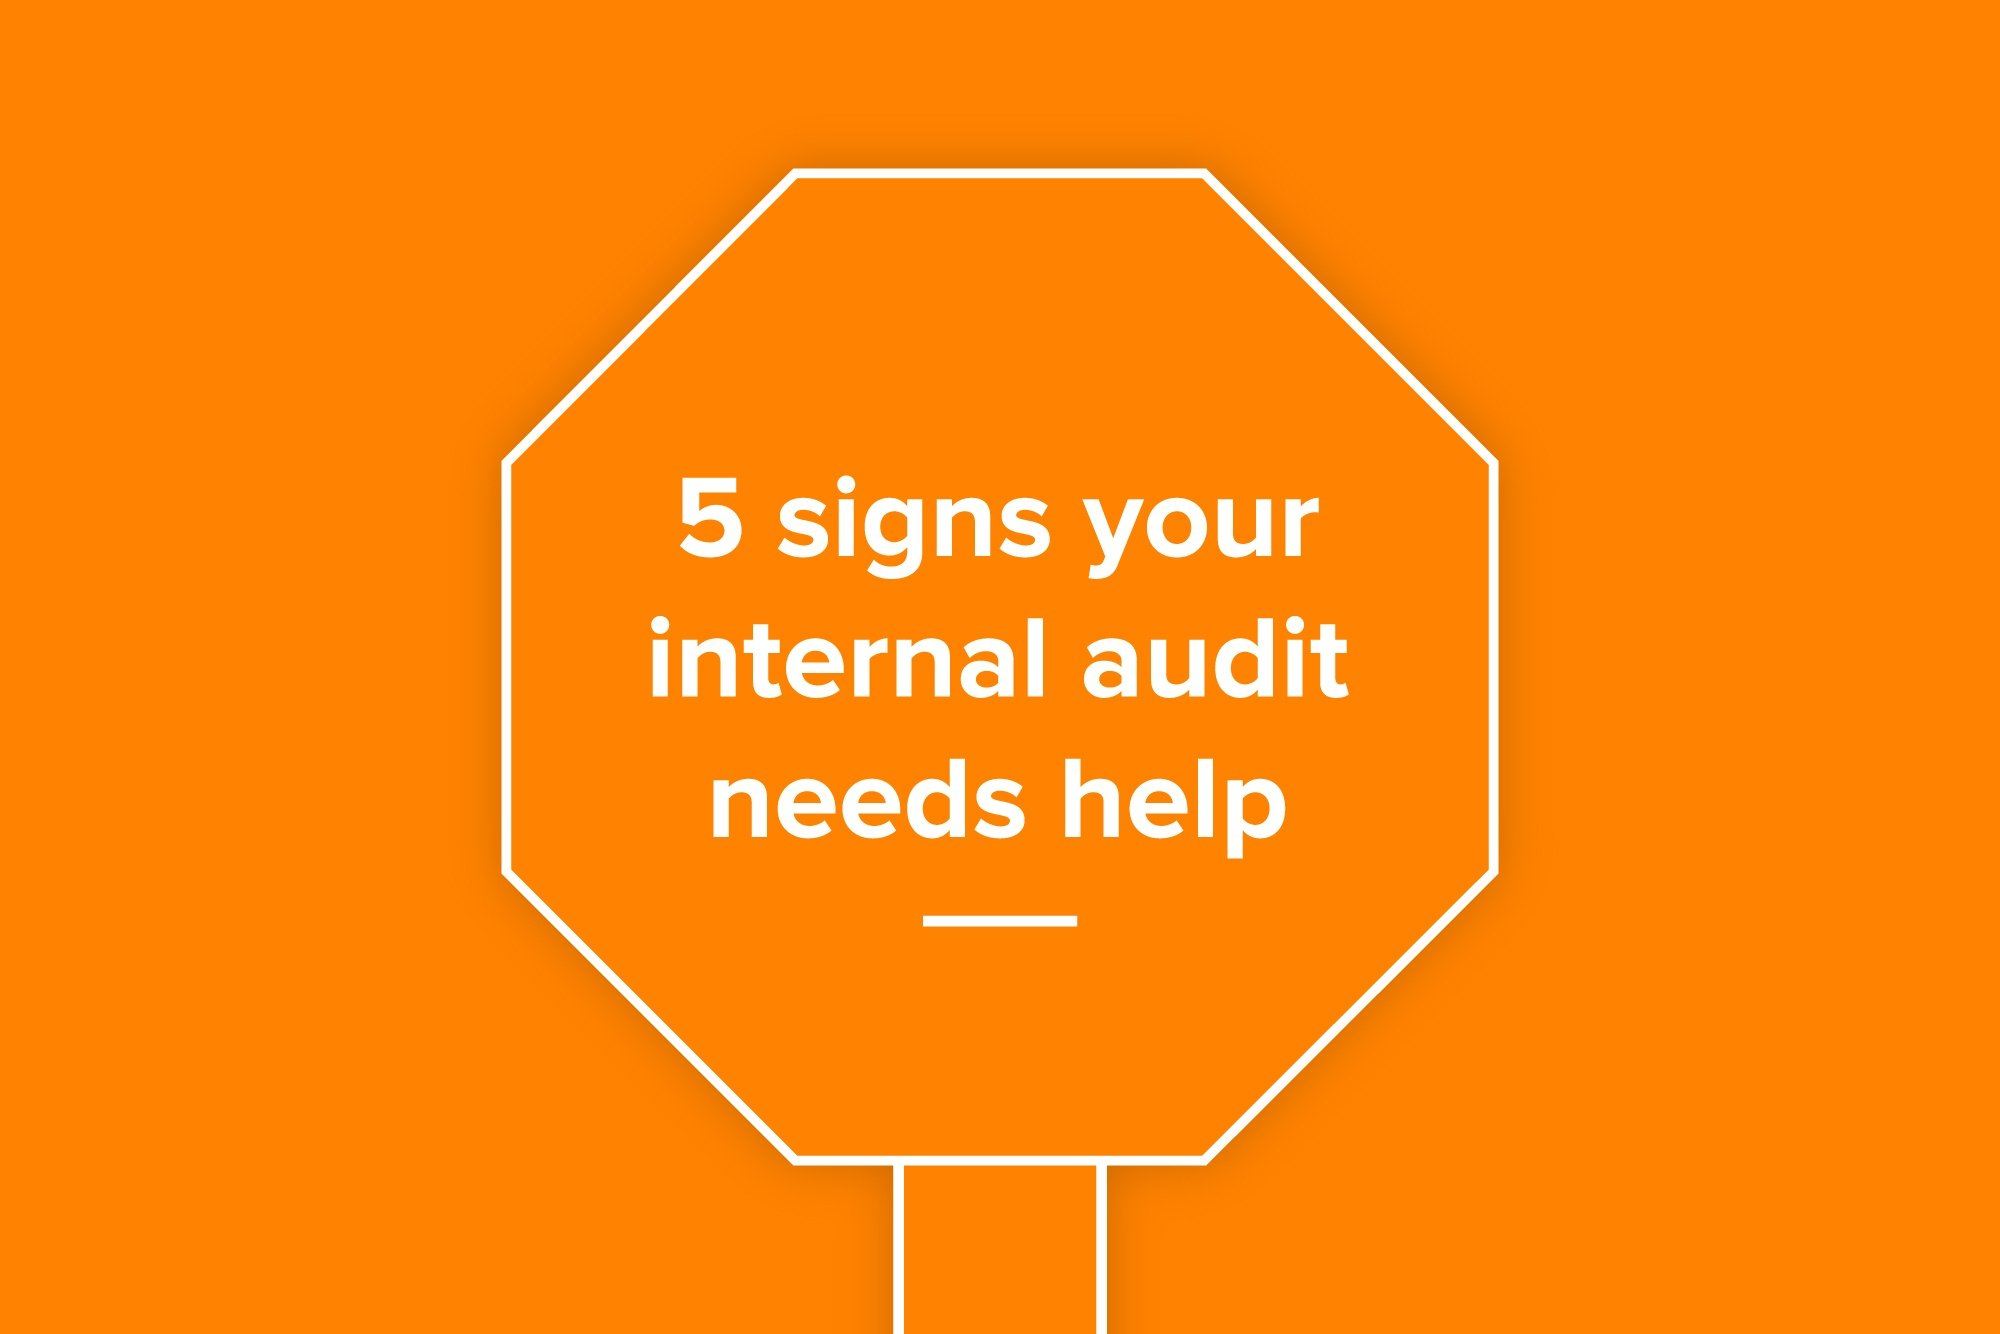 5-signs-internal-audit-help.jpg